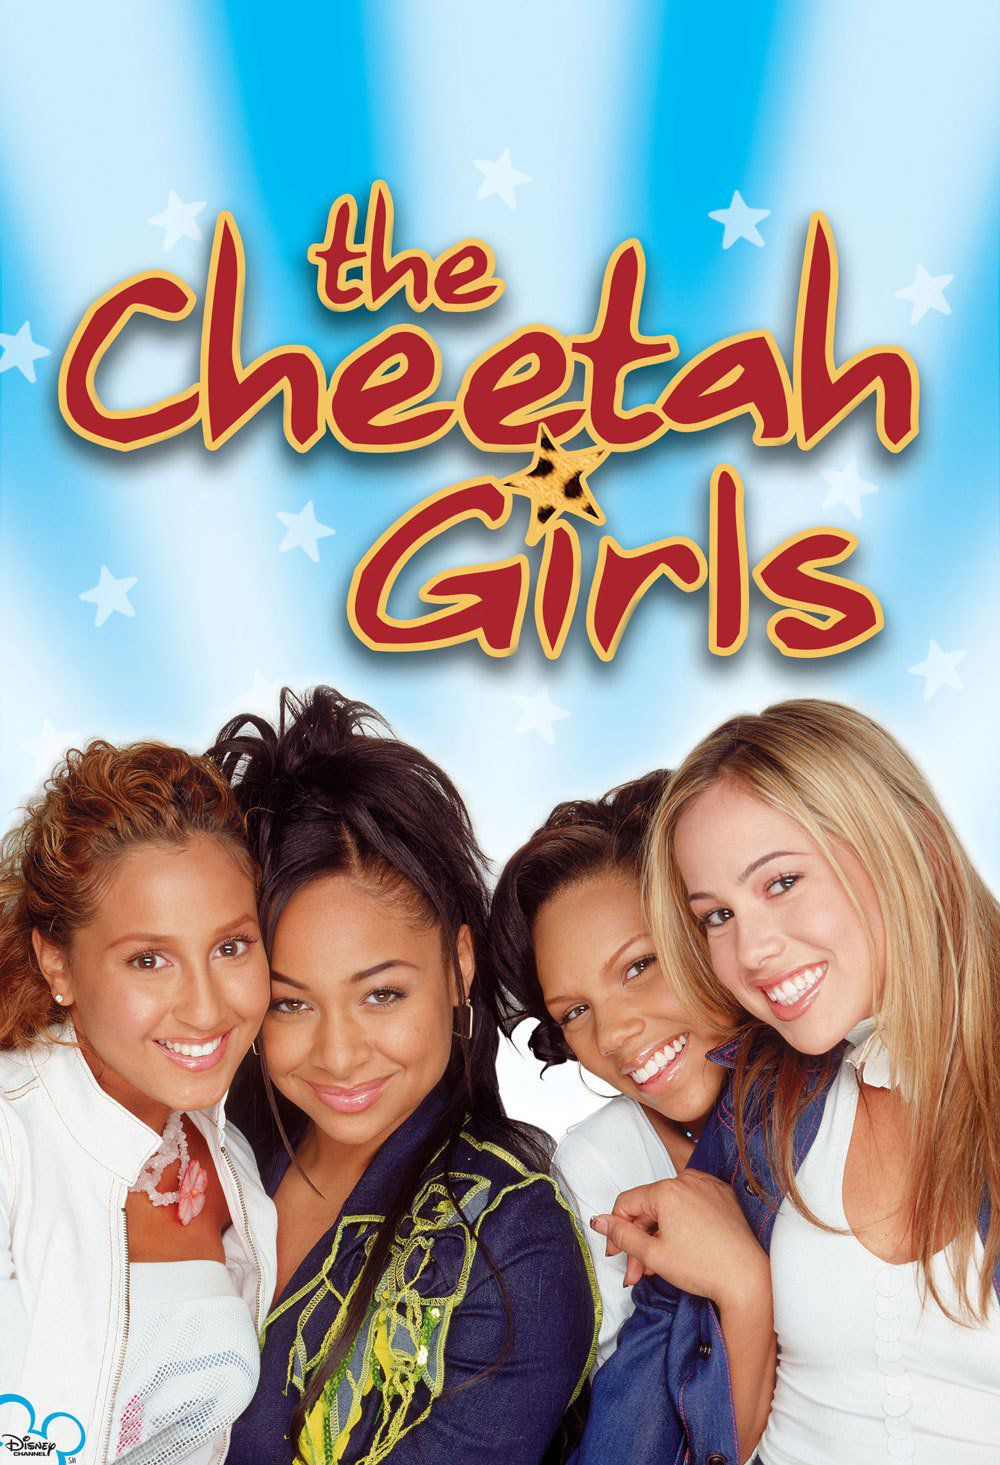 Affiche Poster cheetah girls disney channel